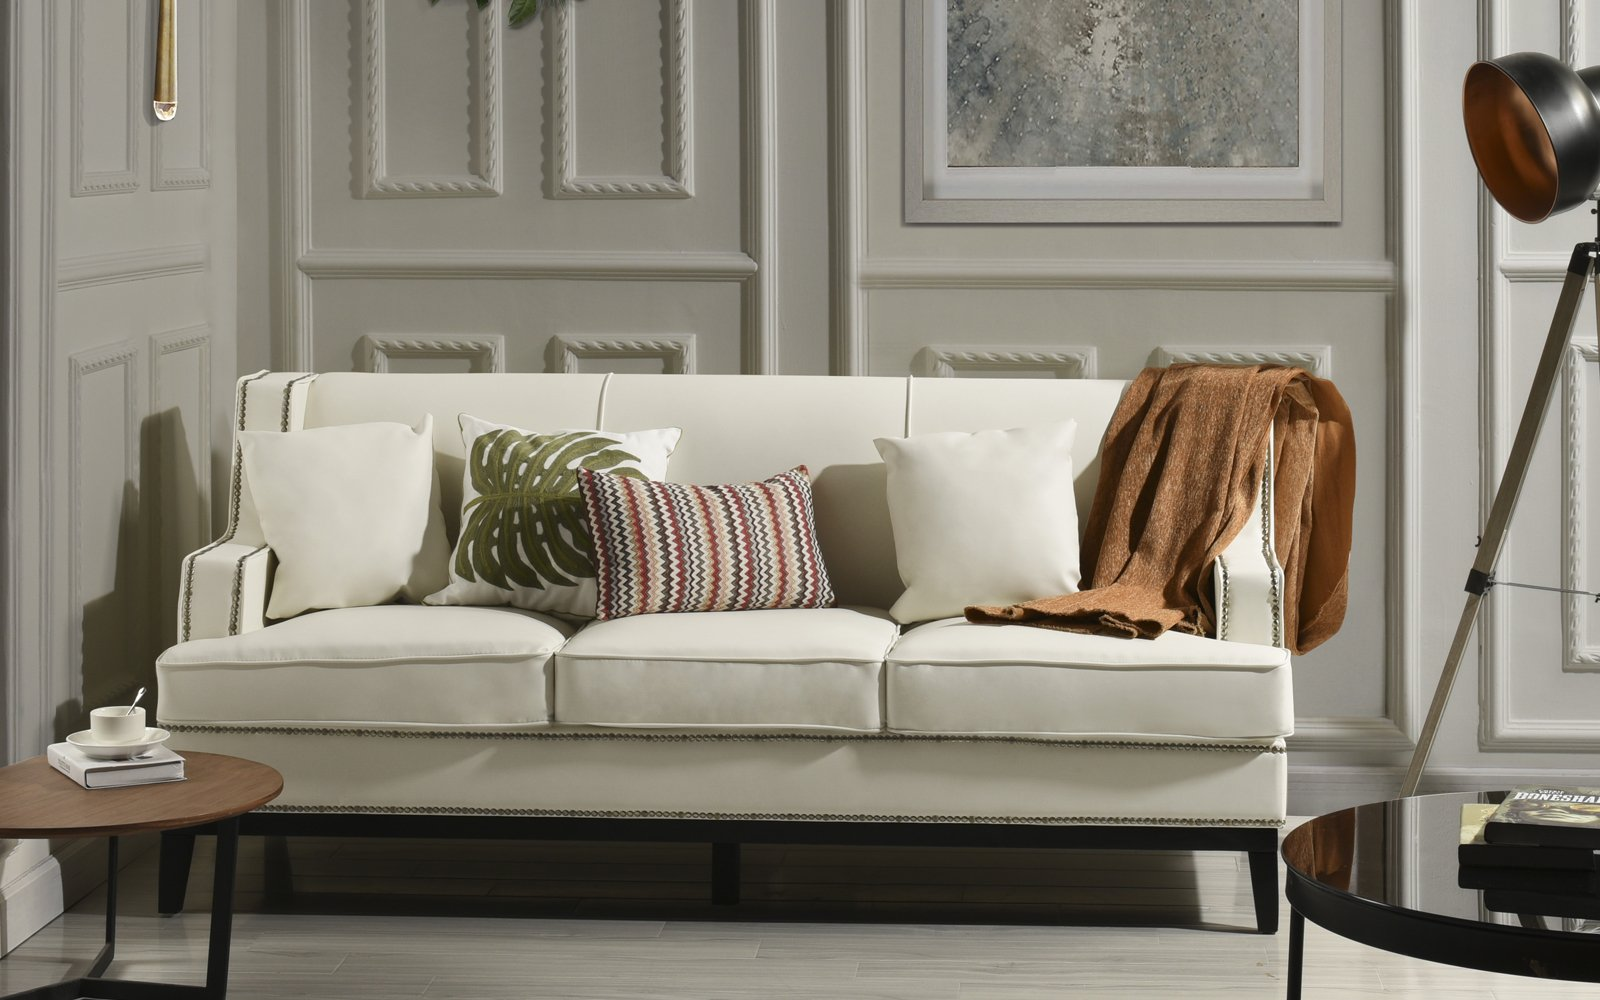 Details about Modern Soft Bonded Leather with Nailhead Trim Details Living  Room Sofa in White